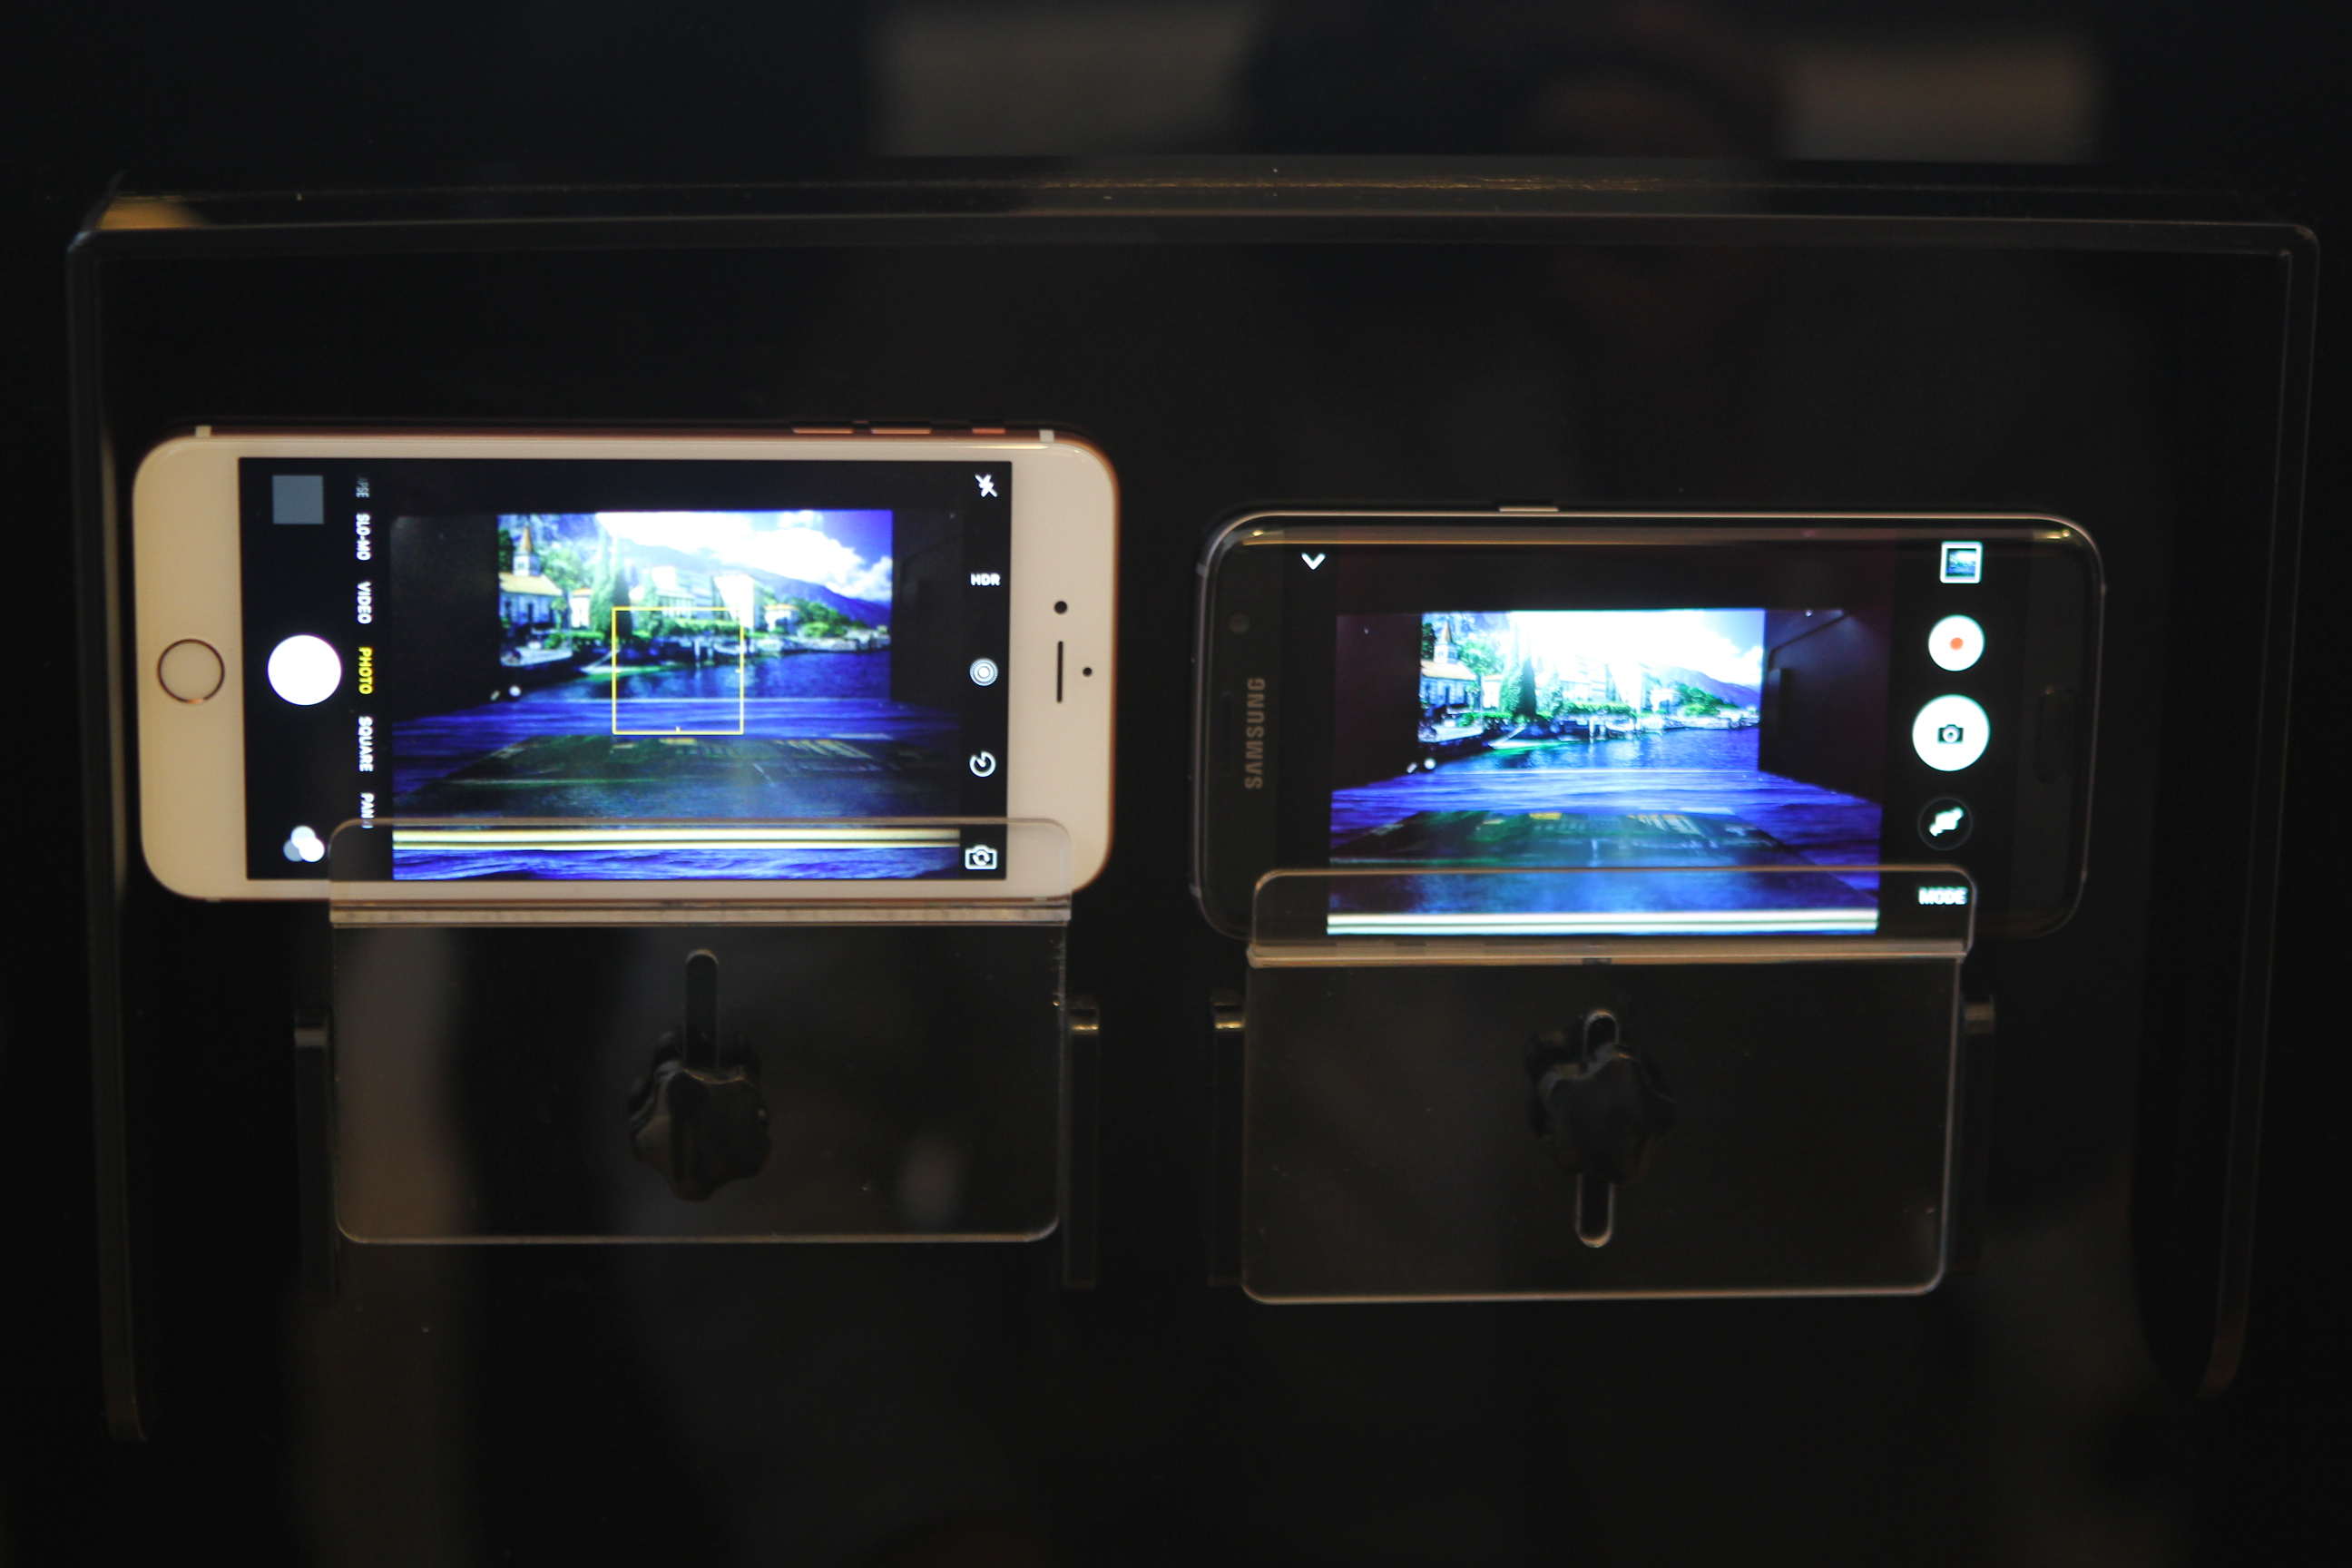 Samsung unveils Galaxy S7 and S7 edge